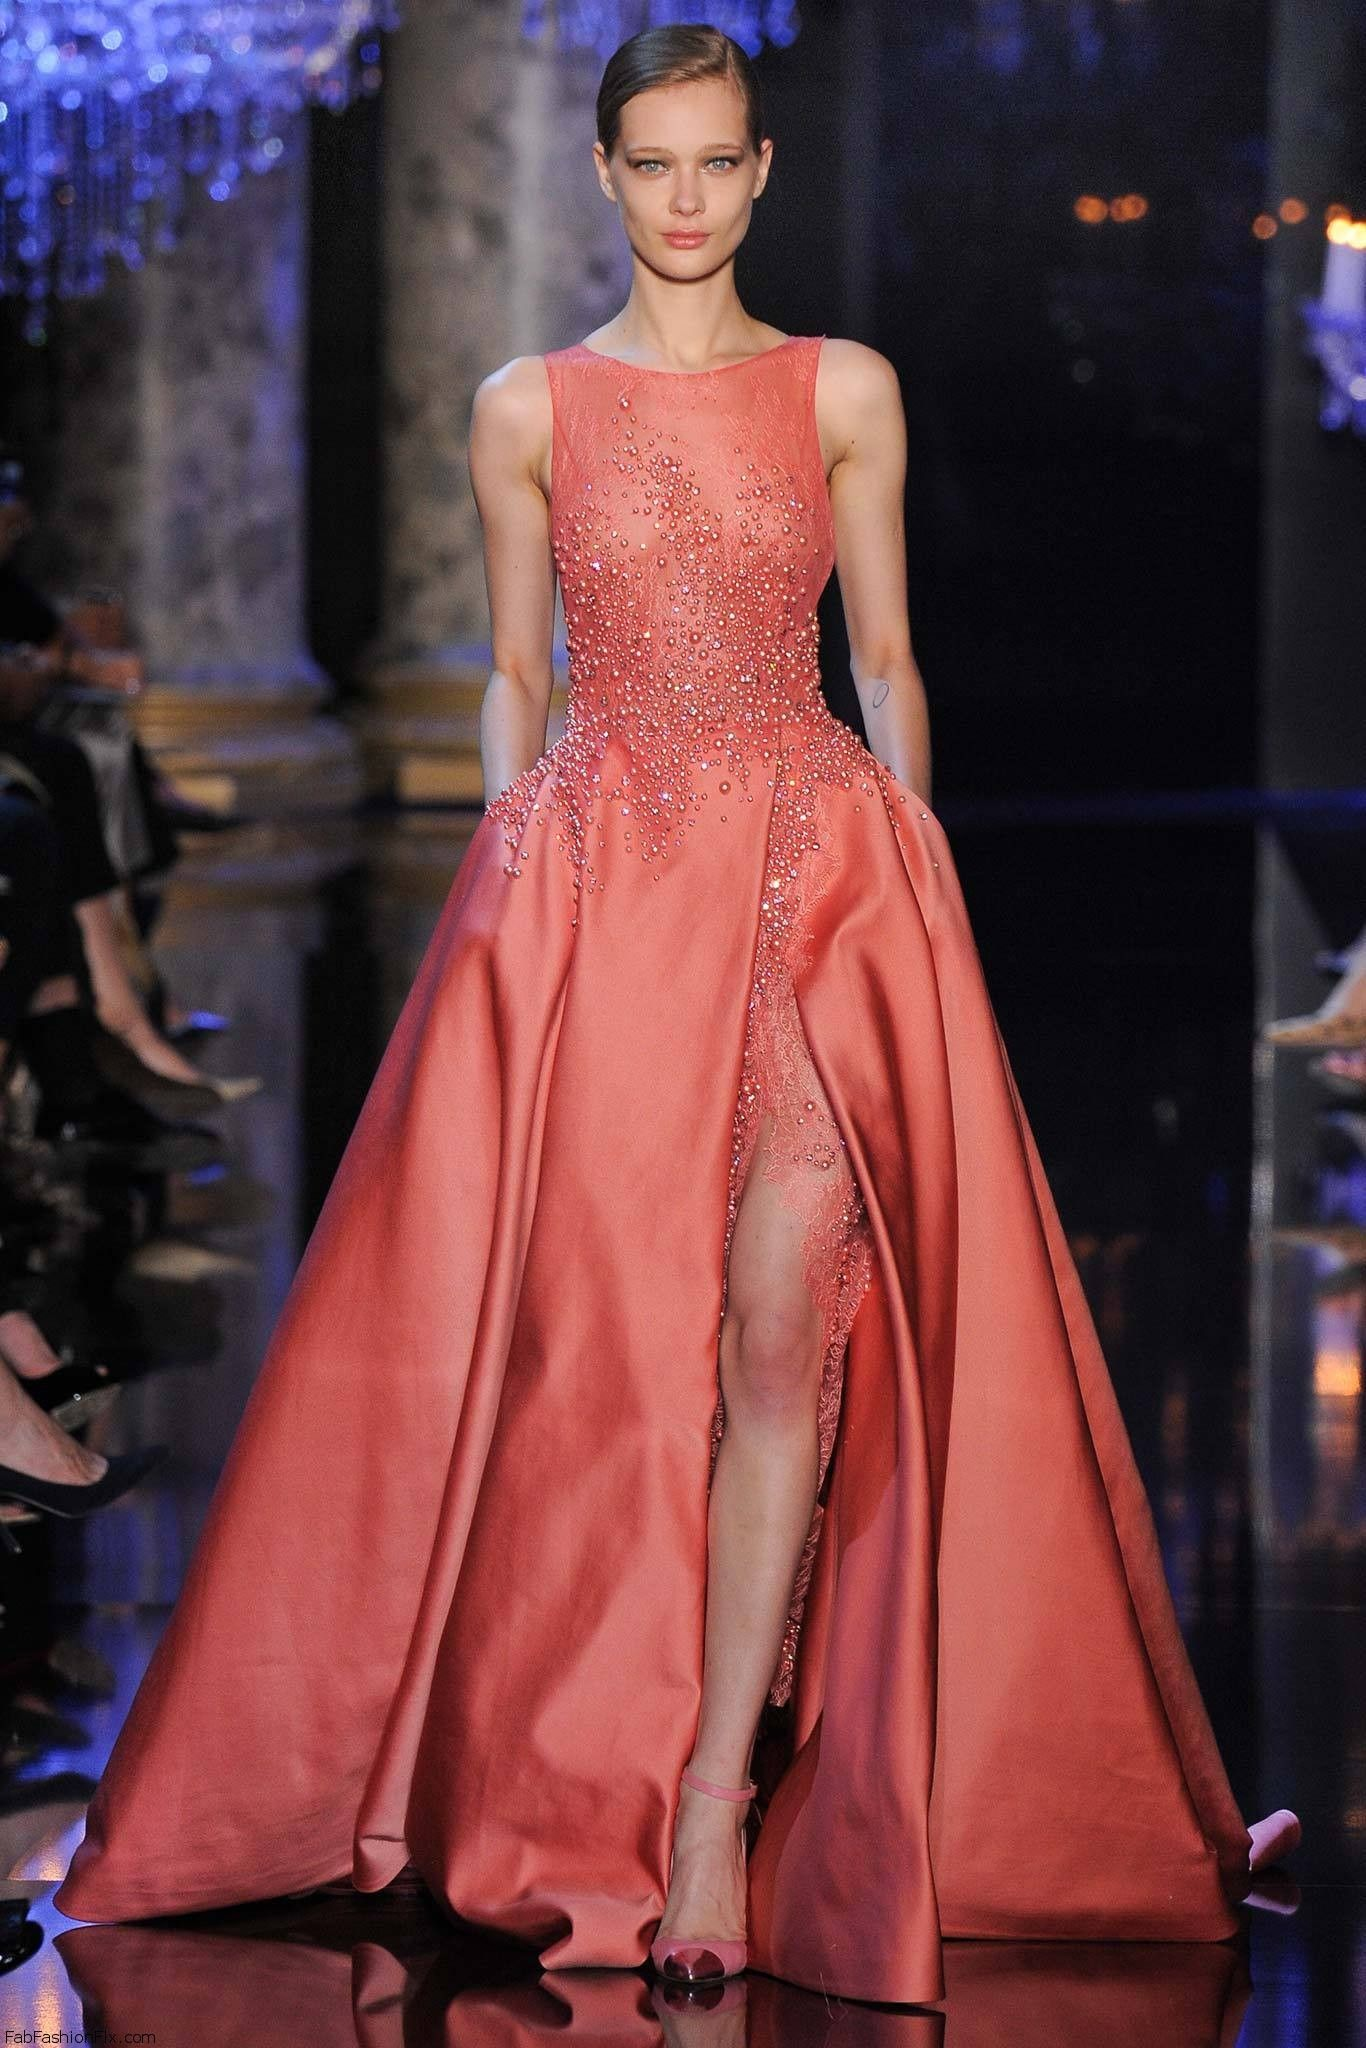 Elie Saab Haute Couture fall 2014 collection   ~Fashion Elegance ...